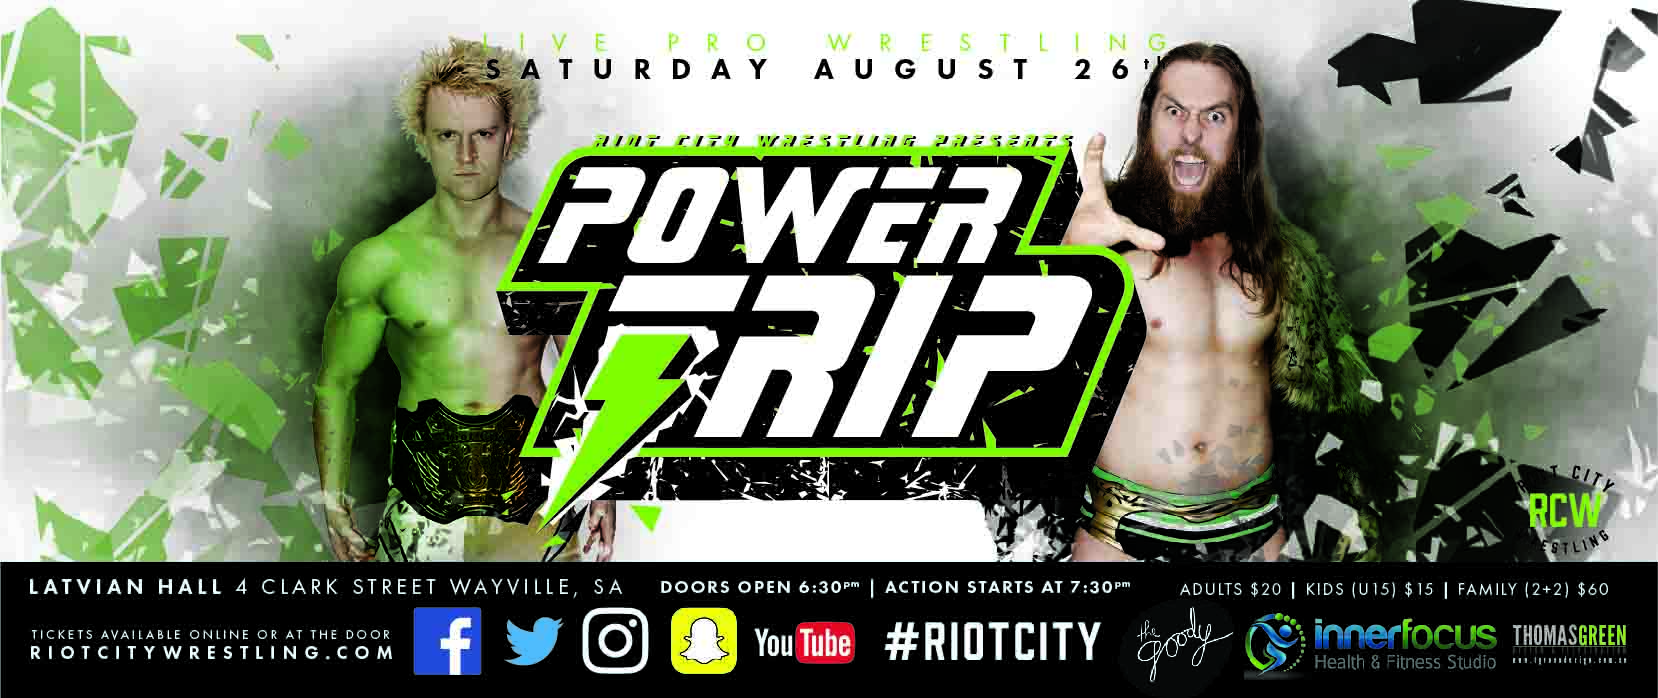 Tickets for Riot City Wrestling: Powertrip 2017 in Wayville from Ticketbooth